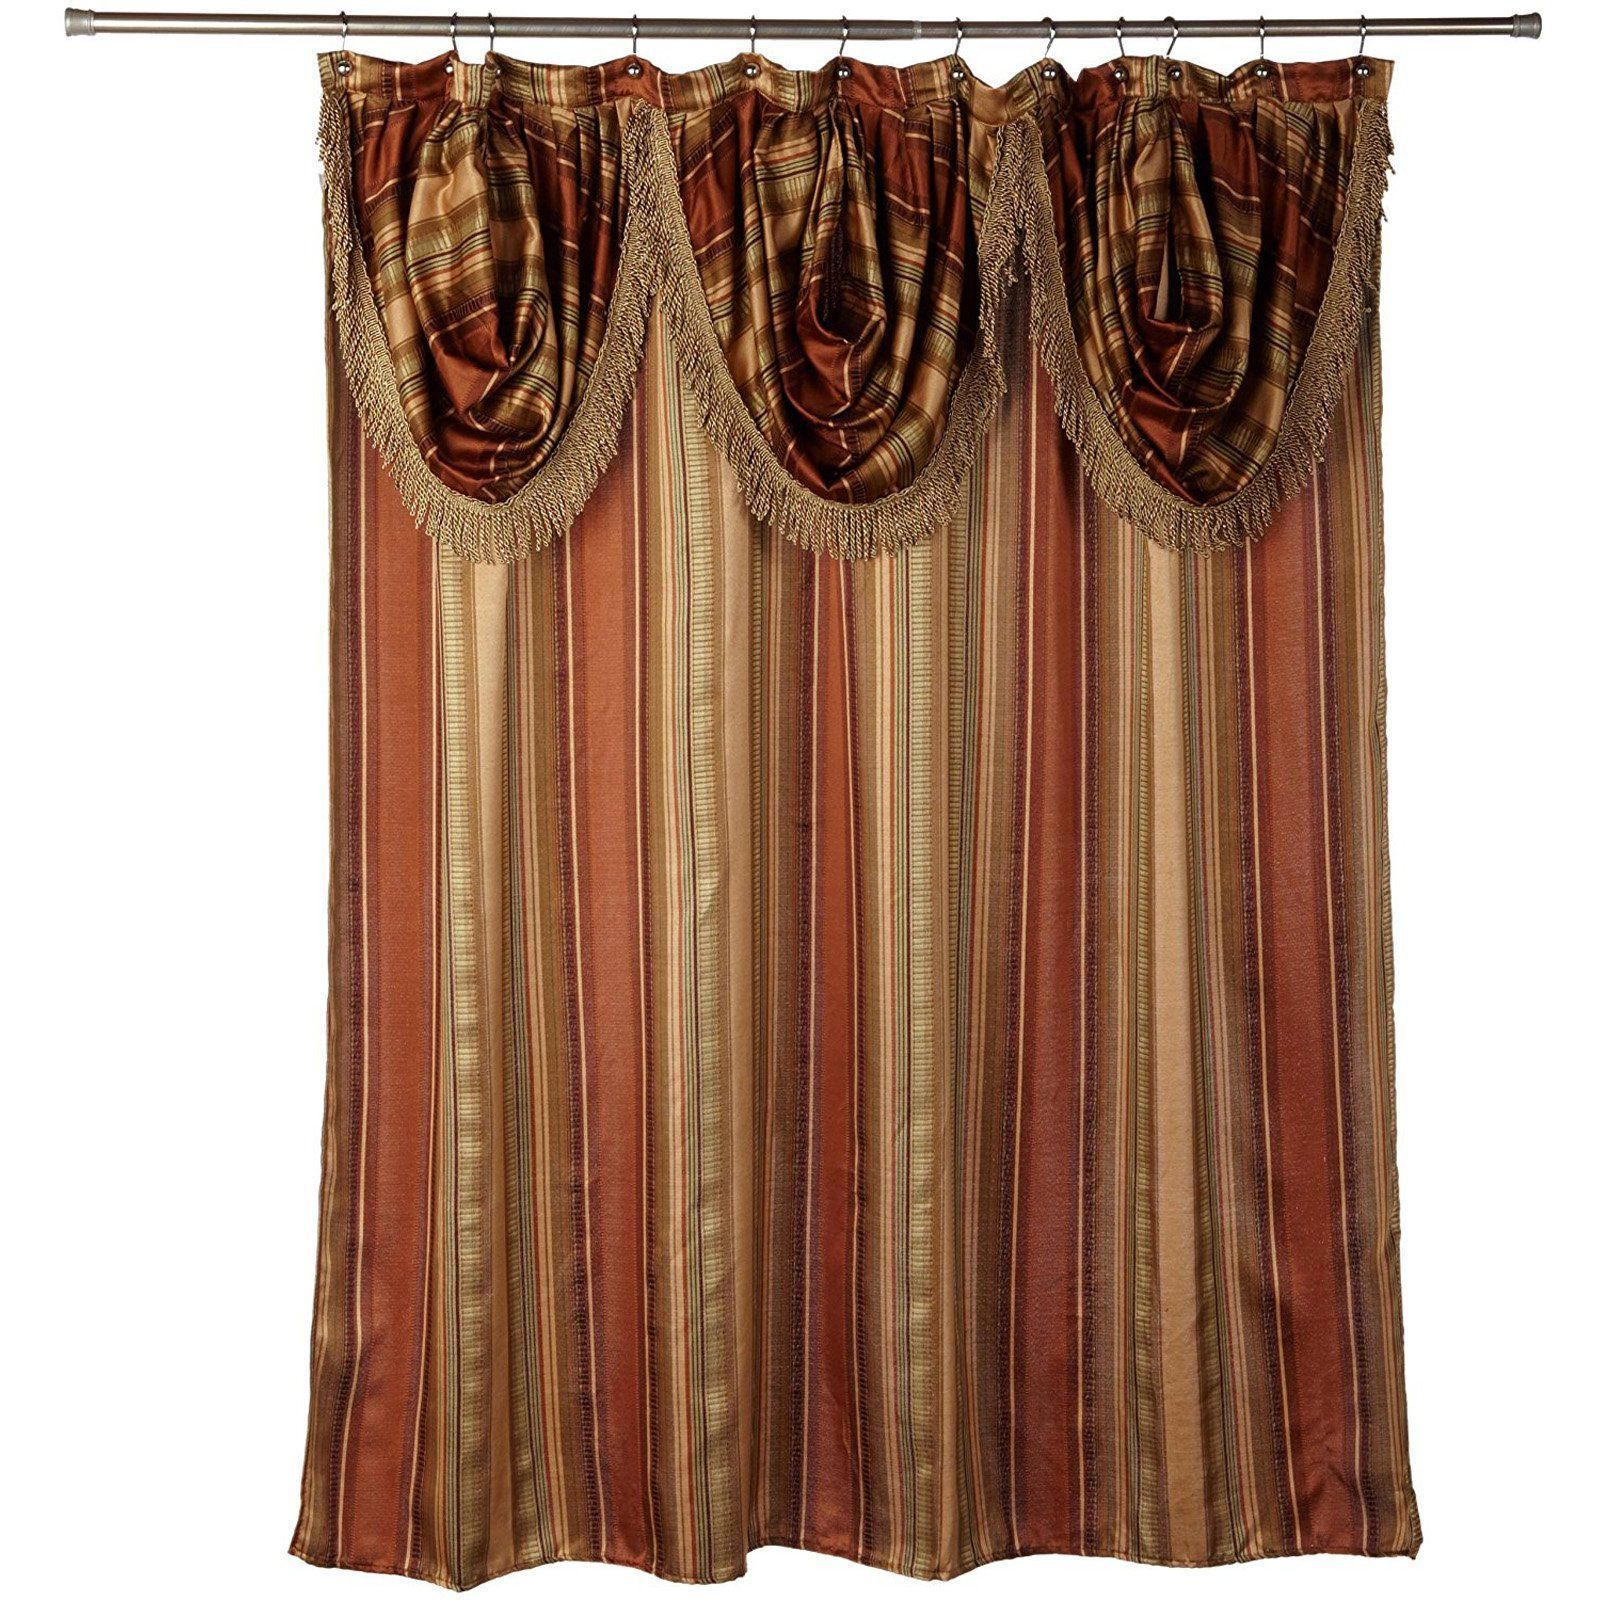 Popular Bath Contempo Shower Curtain Products